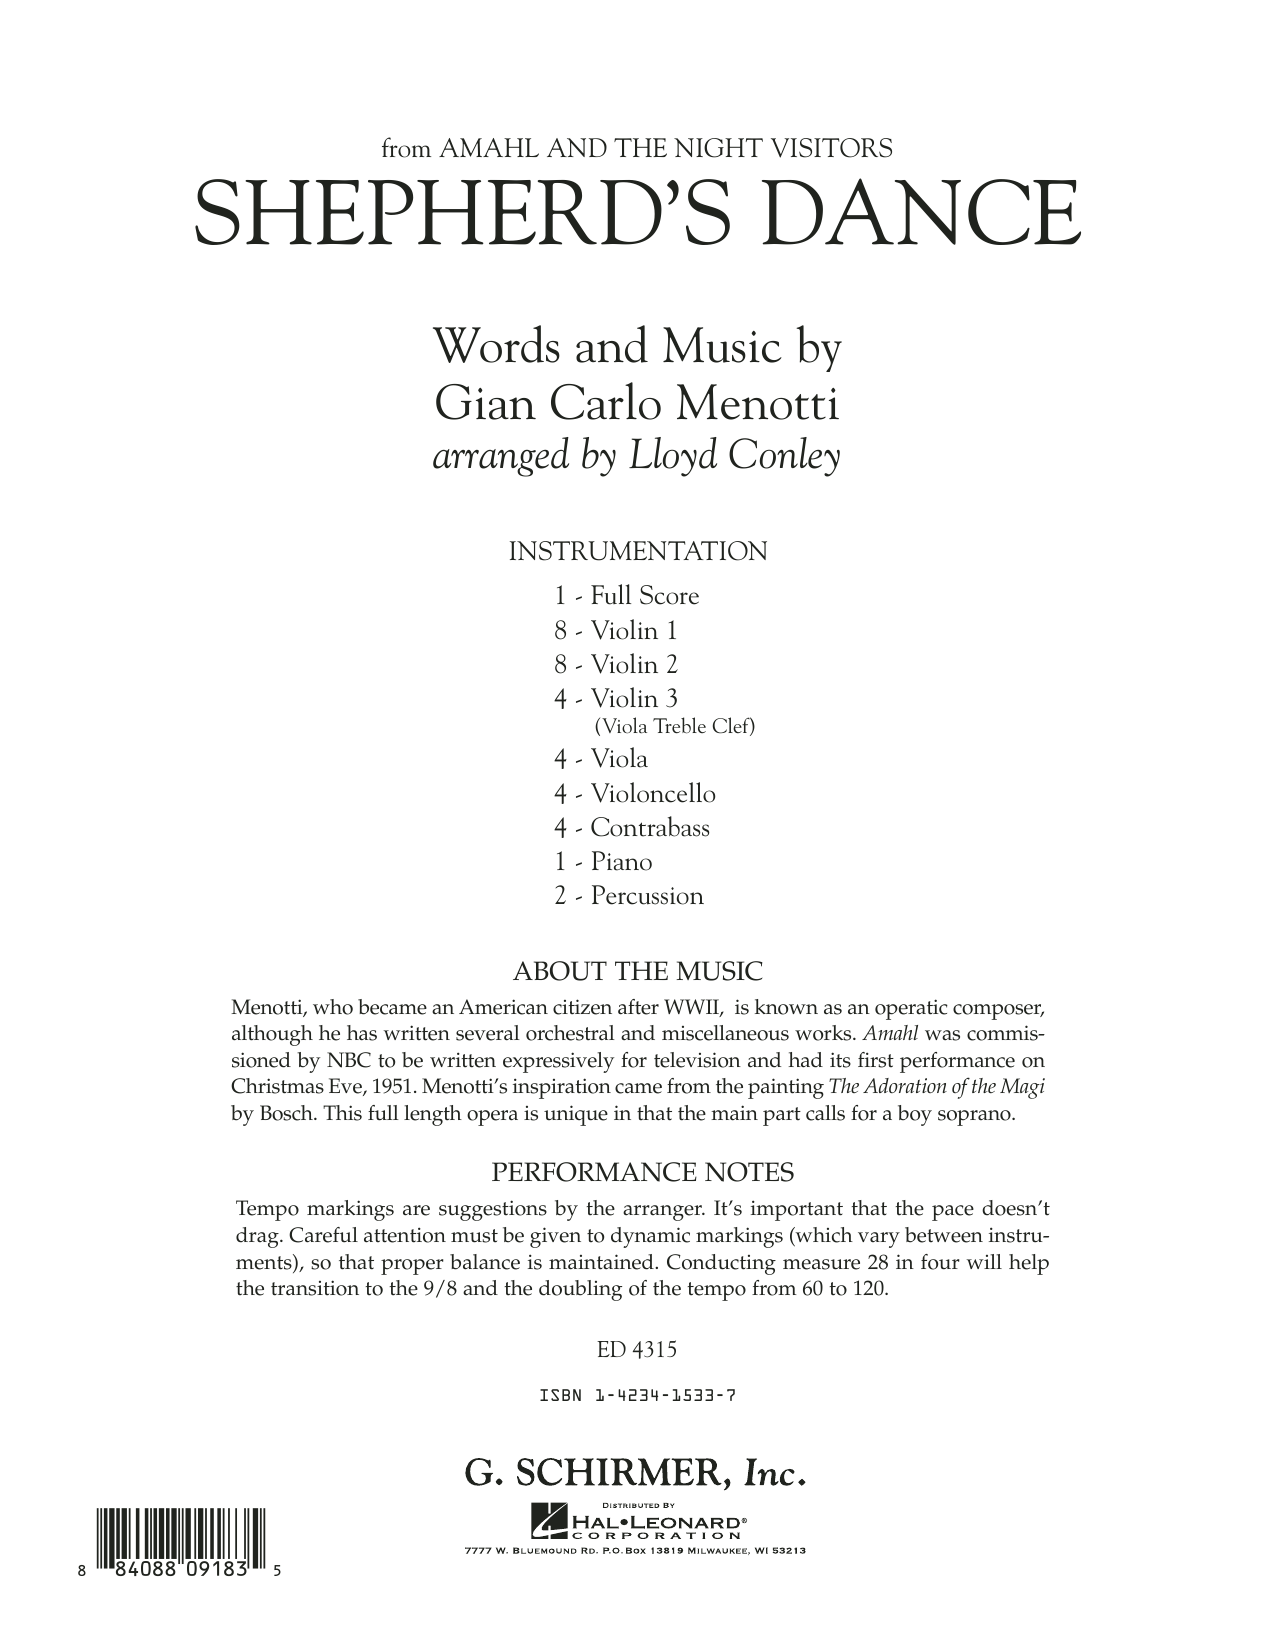 Shepherd's Dance (from Amahl and the Night Visitors) - Full Score